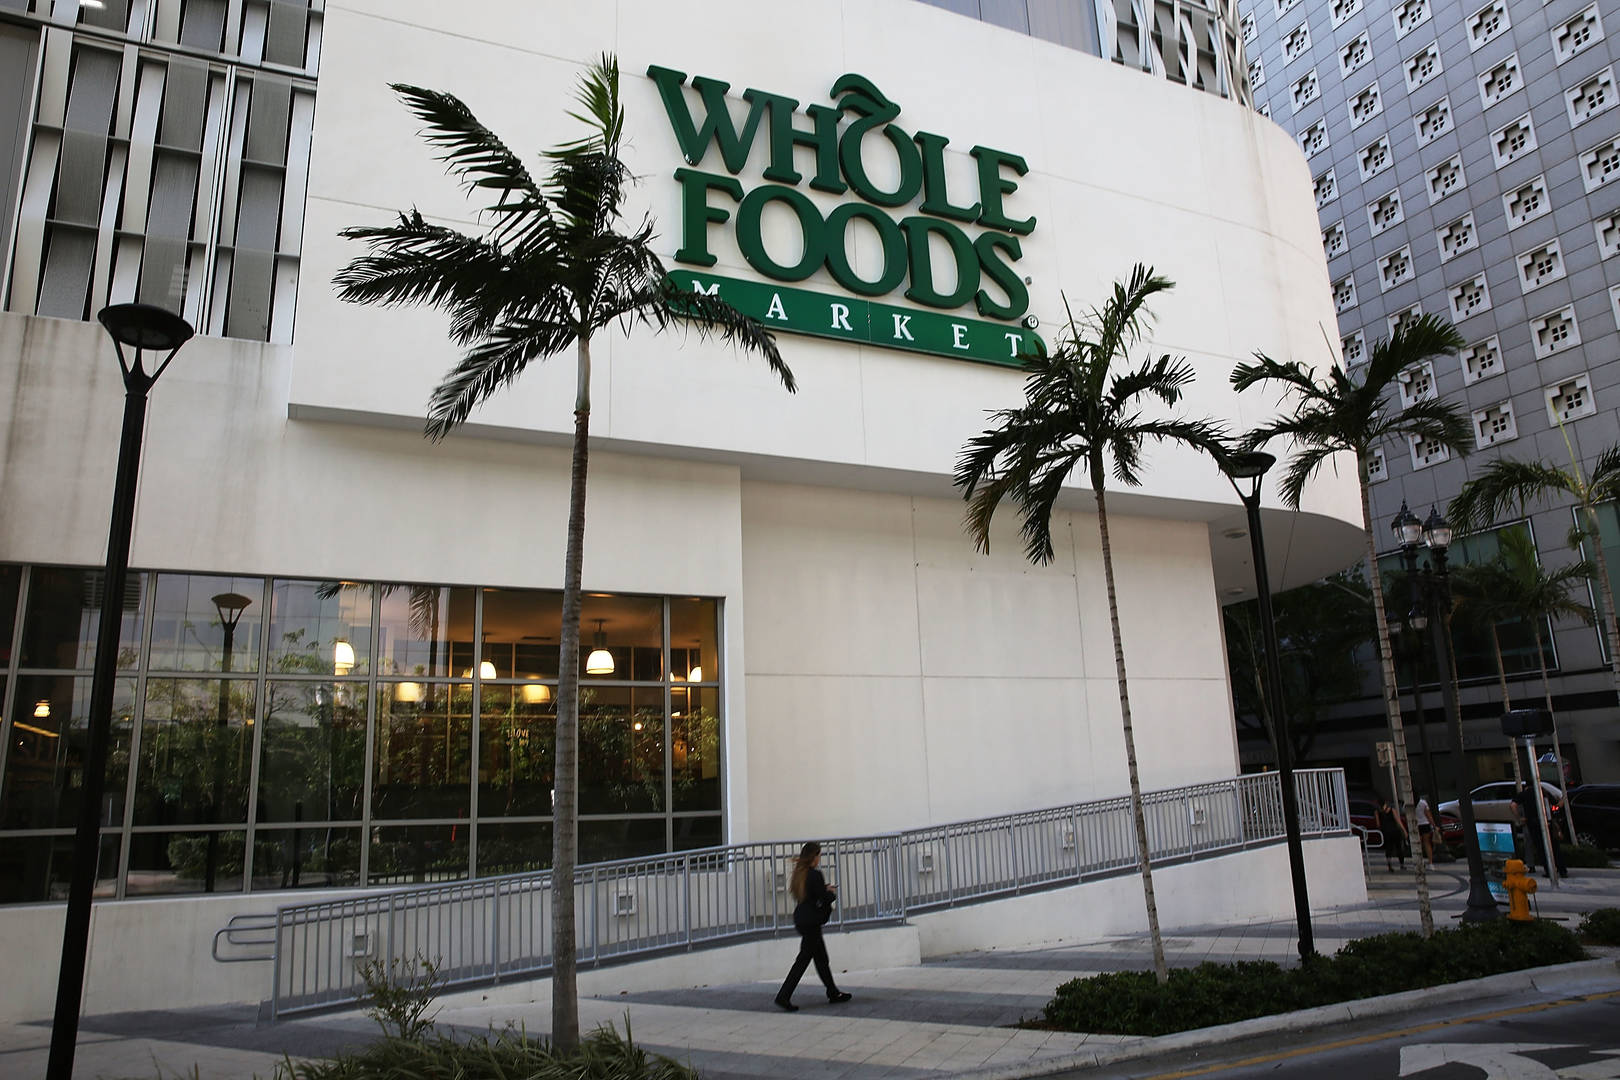 Whole Foods Gets Heat For How They're Handling Coronavirus